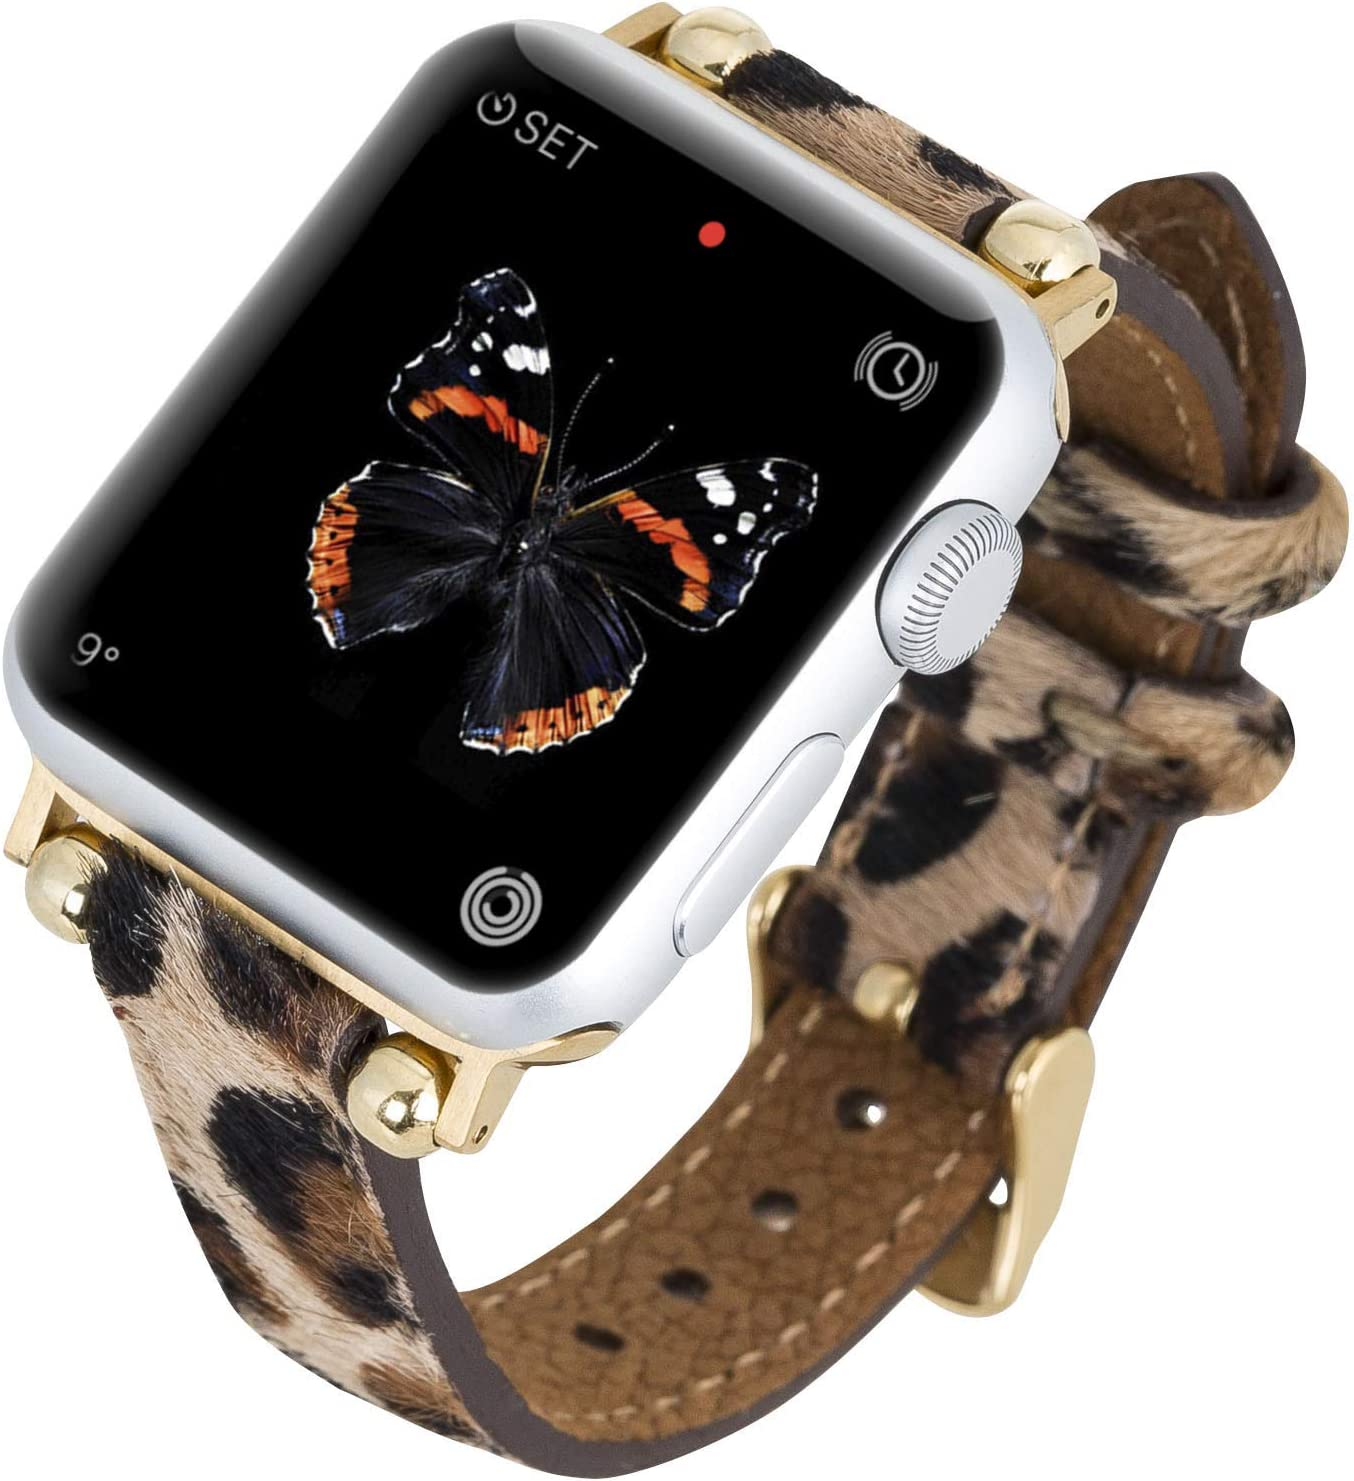 Venito Foggia Leather Watch Our shop most popular Band Ser Apple with Luxury goods Compatible